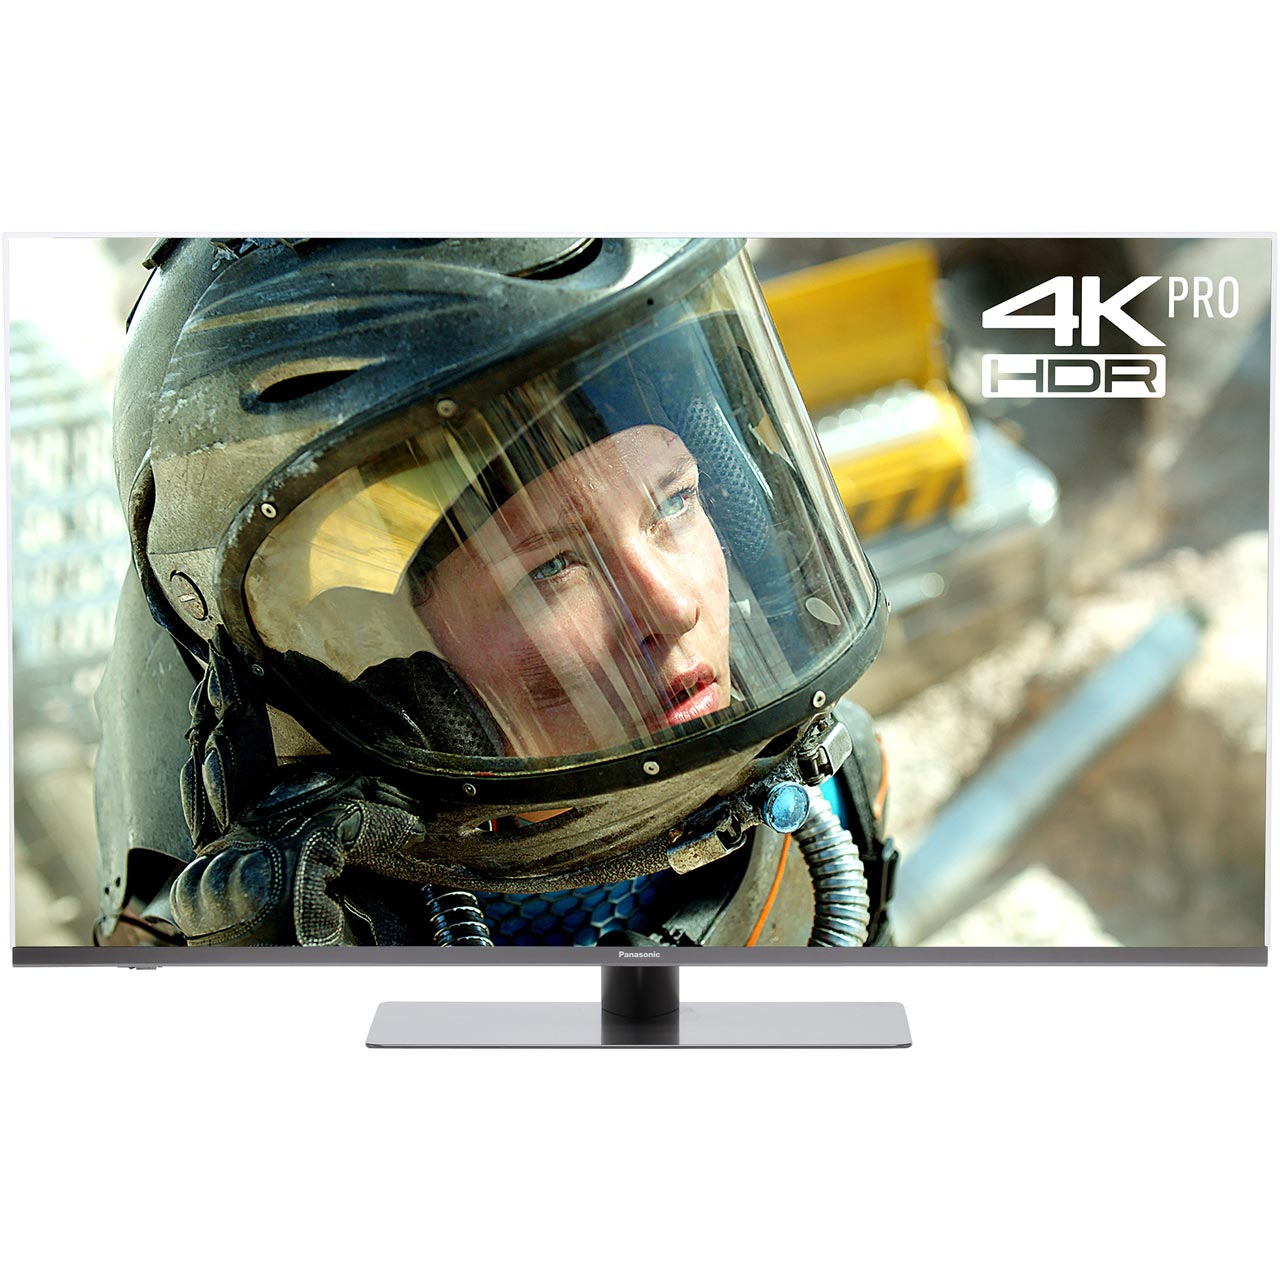 "Panasonic TX 49FX750B - 49"" LED Smart TV - 4K UltraHD"